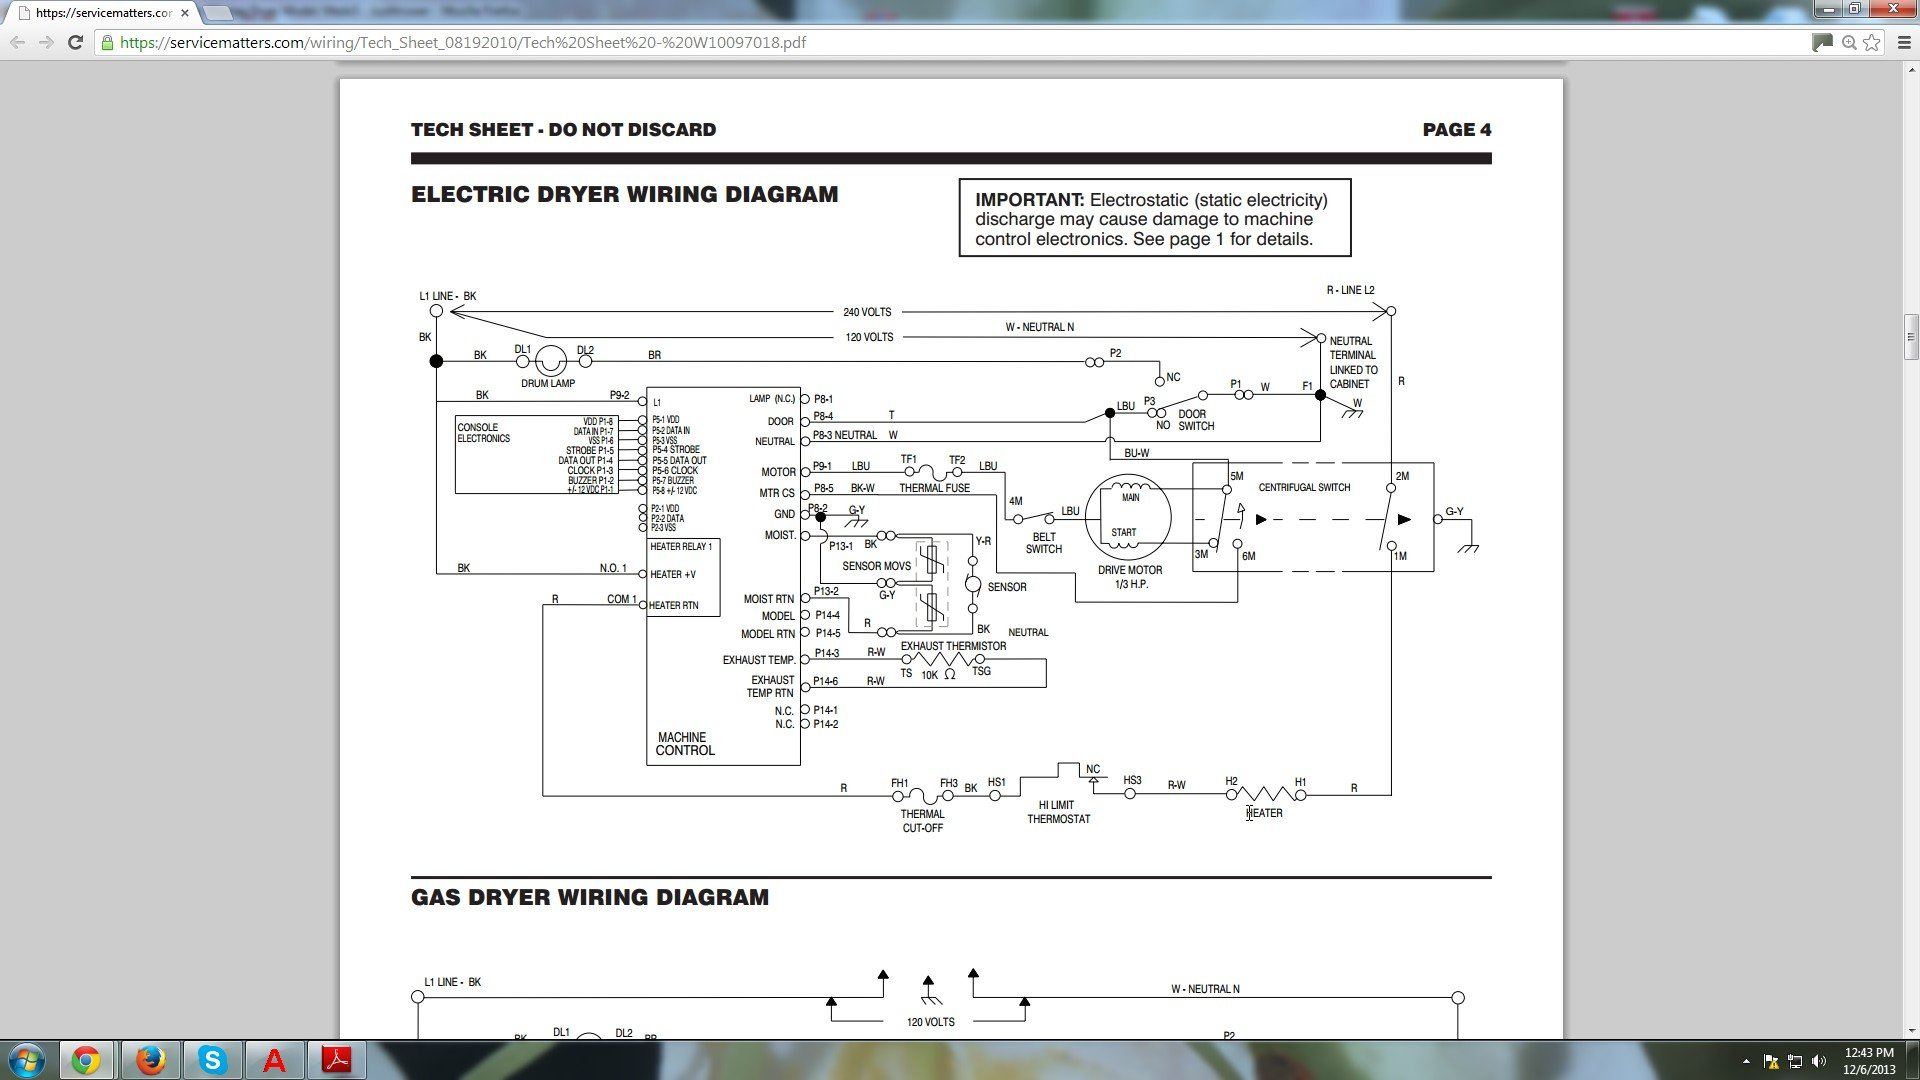 Diagram For Maytag De406 Electrical Wiring Dishwasher Looking Drawing Dryer Model Medx500xw0 Parts